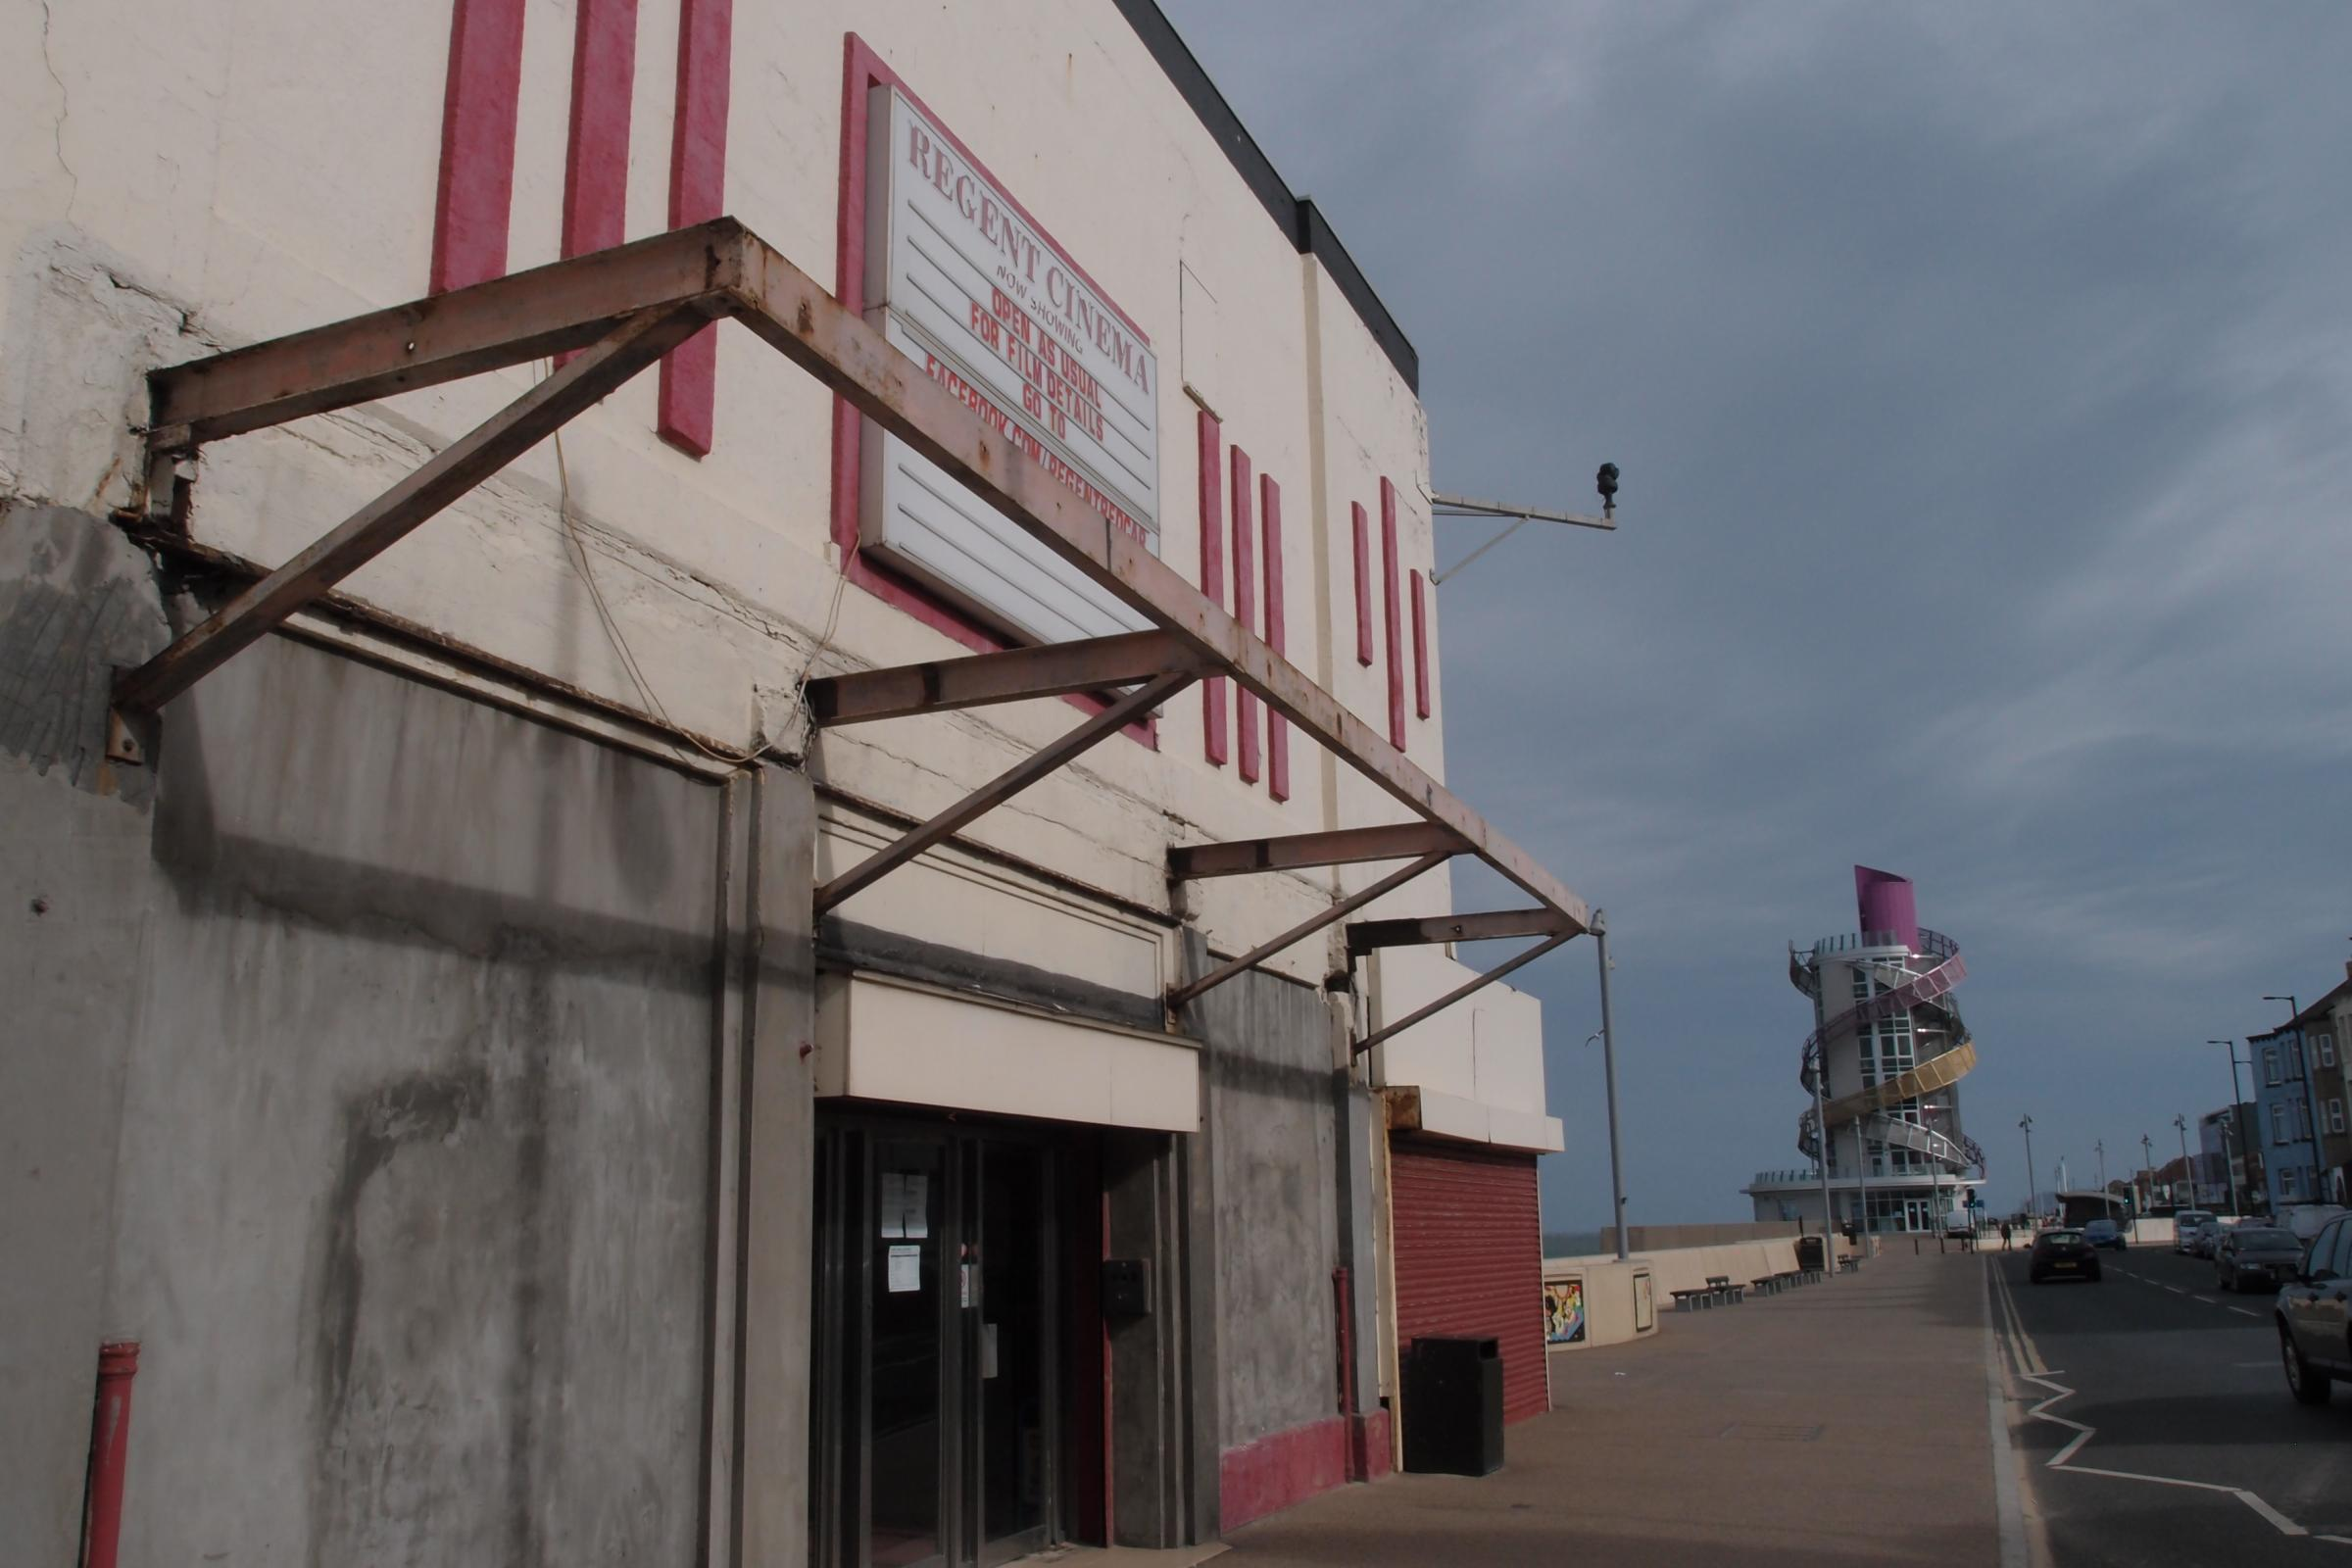 Camapign launched to protect Redcar's Regent Cinema